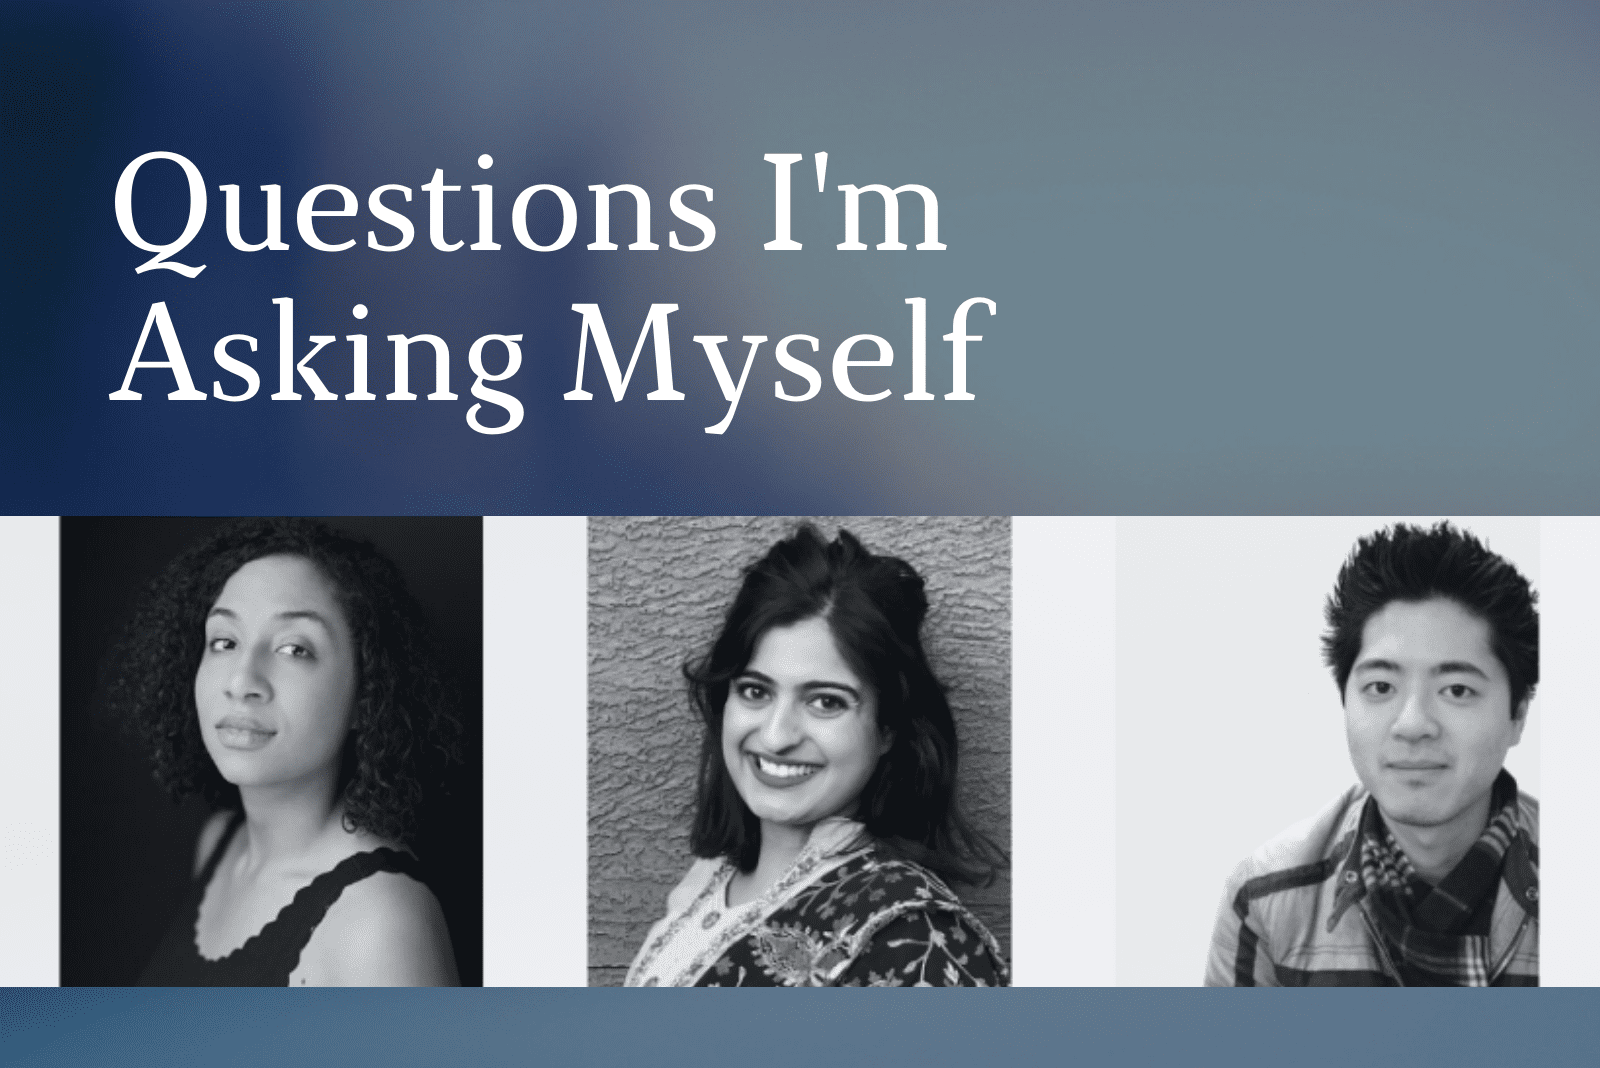 Promo image for Questions I'm Asking Myself webinar with images of Mariam Barry, Gavan Cheema, and Kenji Maeda